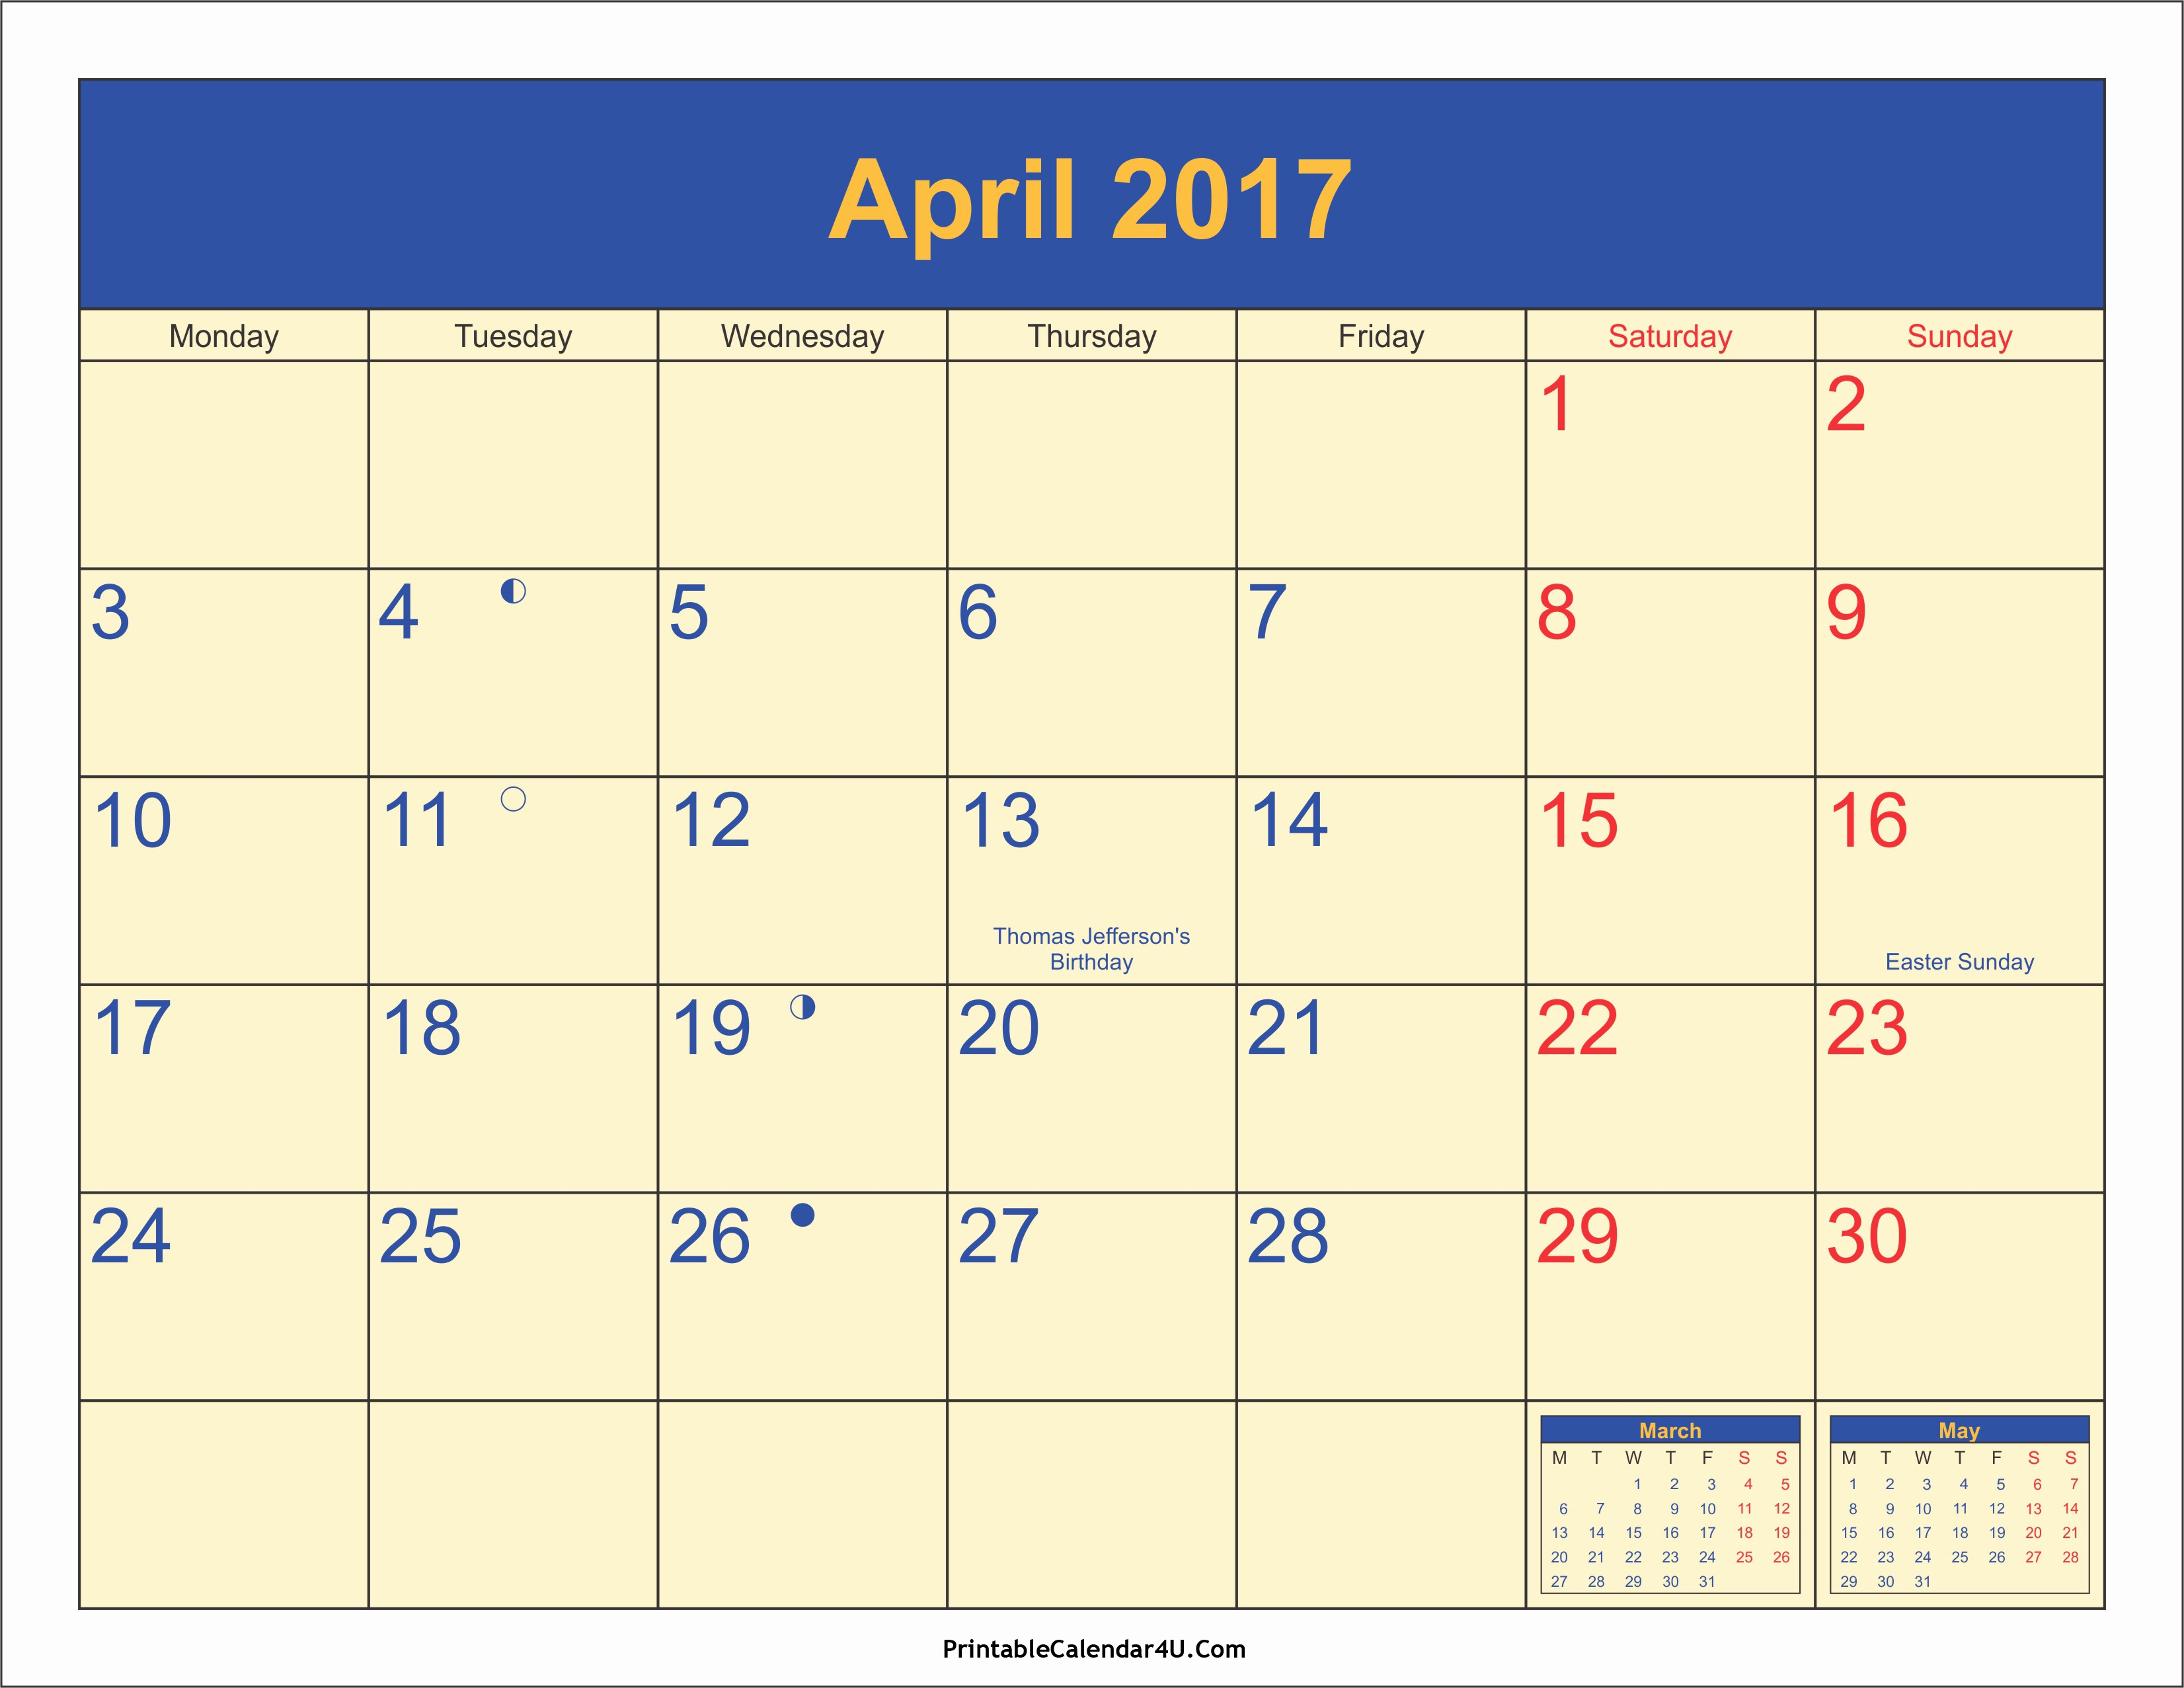 Calendar 2017 Template with Holidays Awesome April 2017 Calendar with Holidays